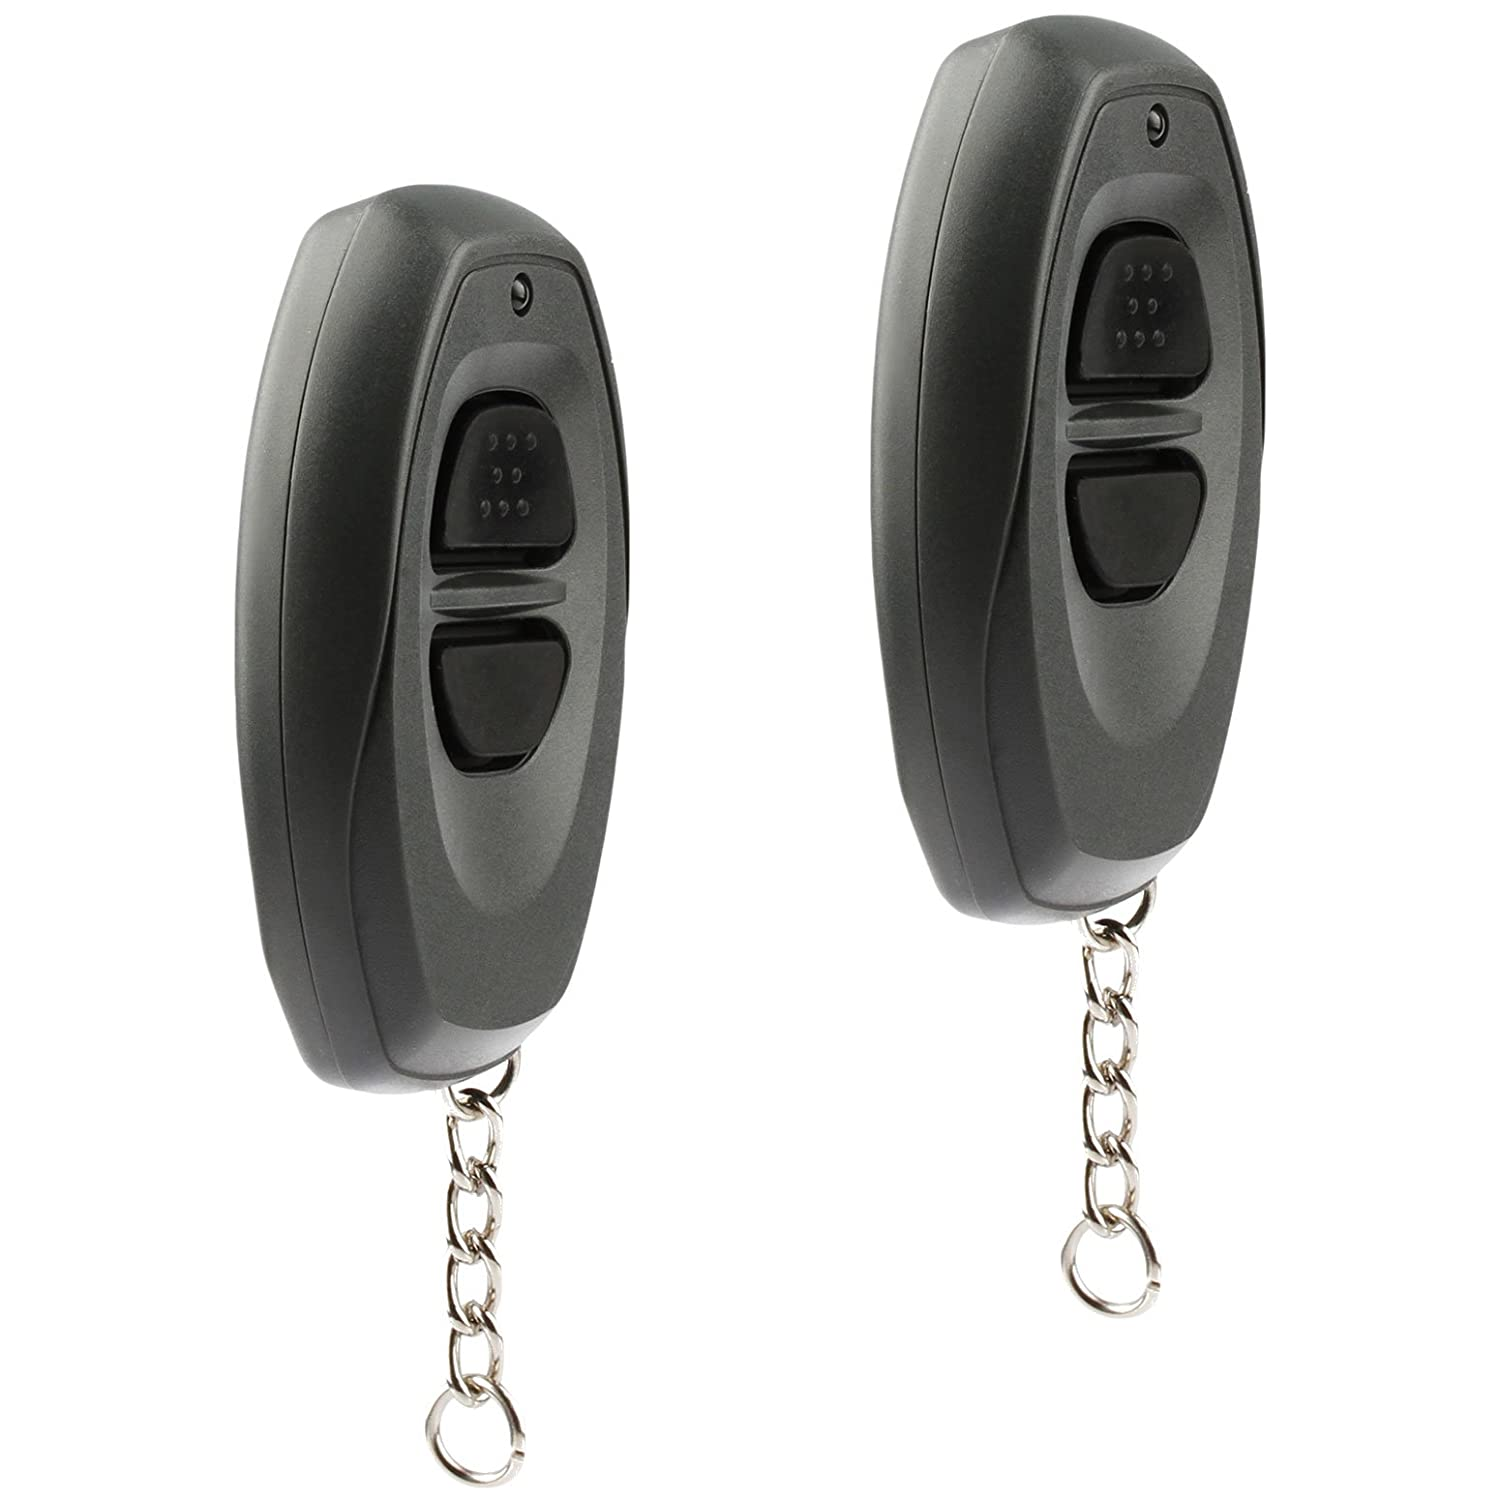 BAB237131-022, 08191-00870 Car Key Fob Keyless Entry Remote fits Toyota Dealer Installed Systems USARemote